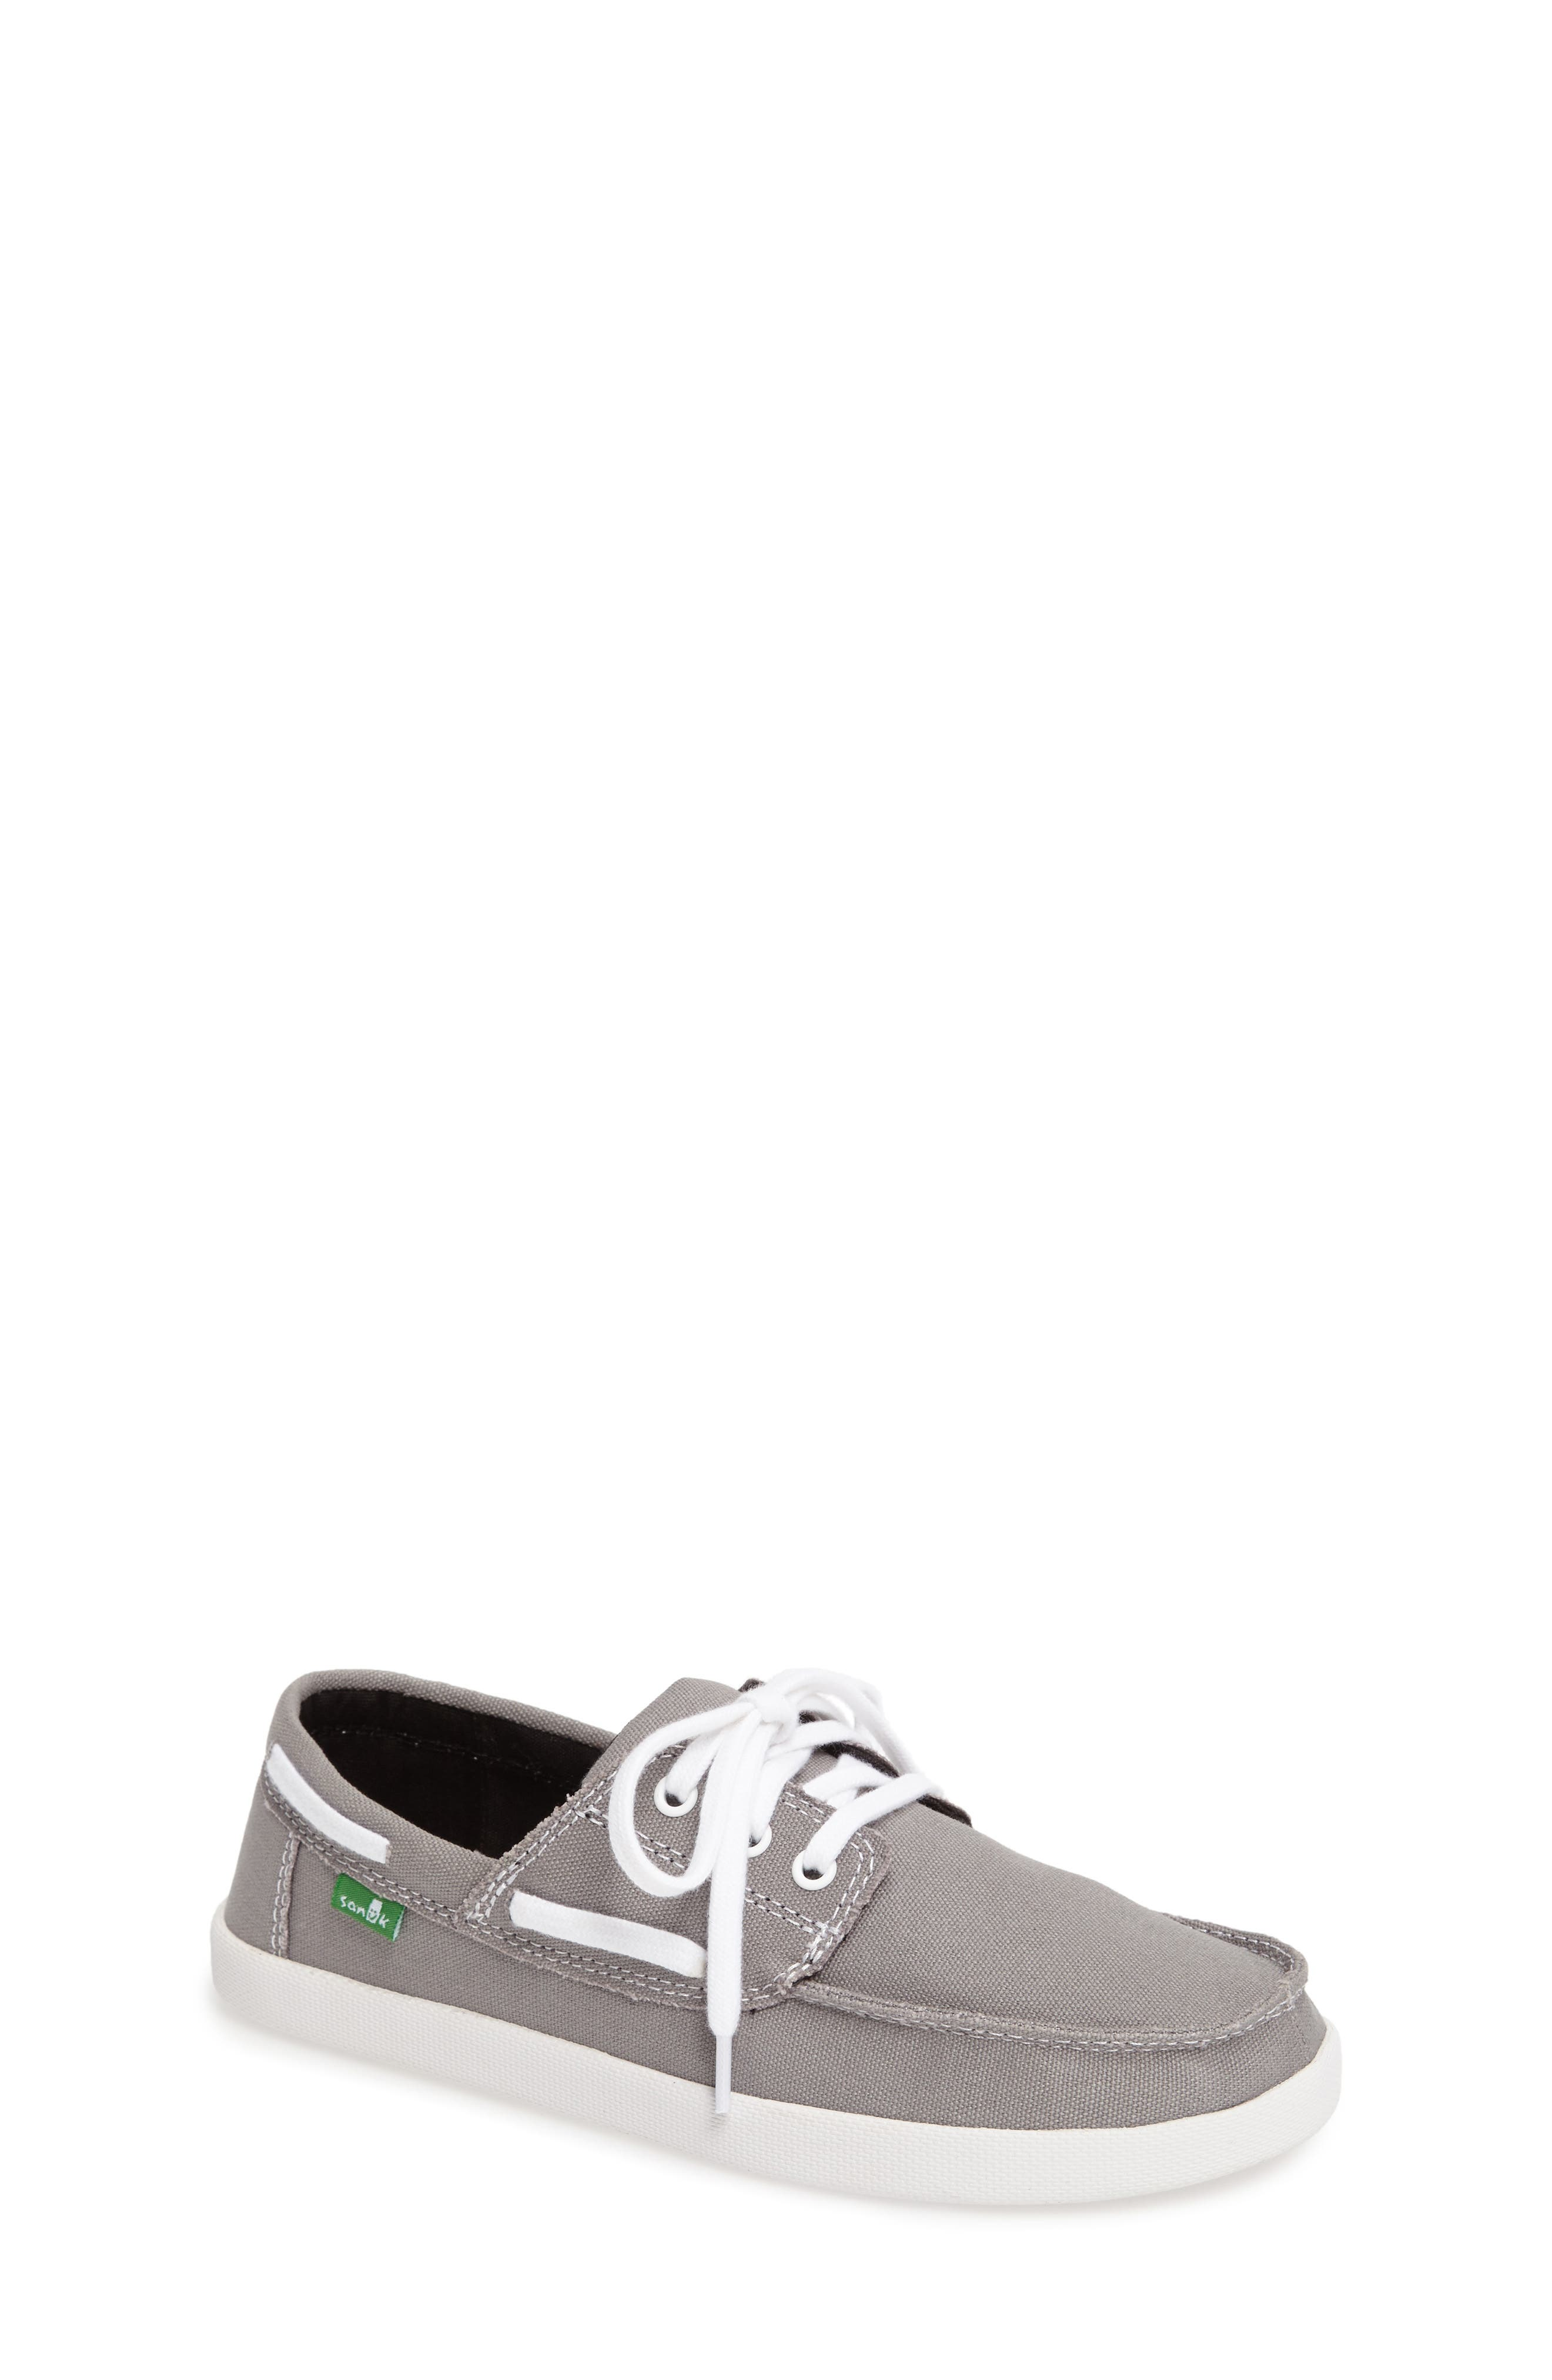 Alternate Image 1 Selected - Sanuk Lil Deck Hand Slip-On Sneaker (Toddler, Little Kid & Big Kid)